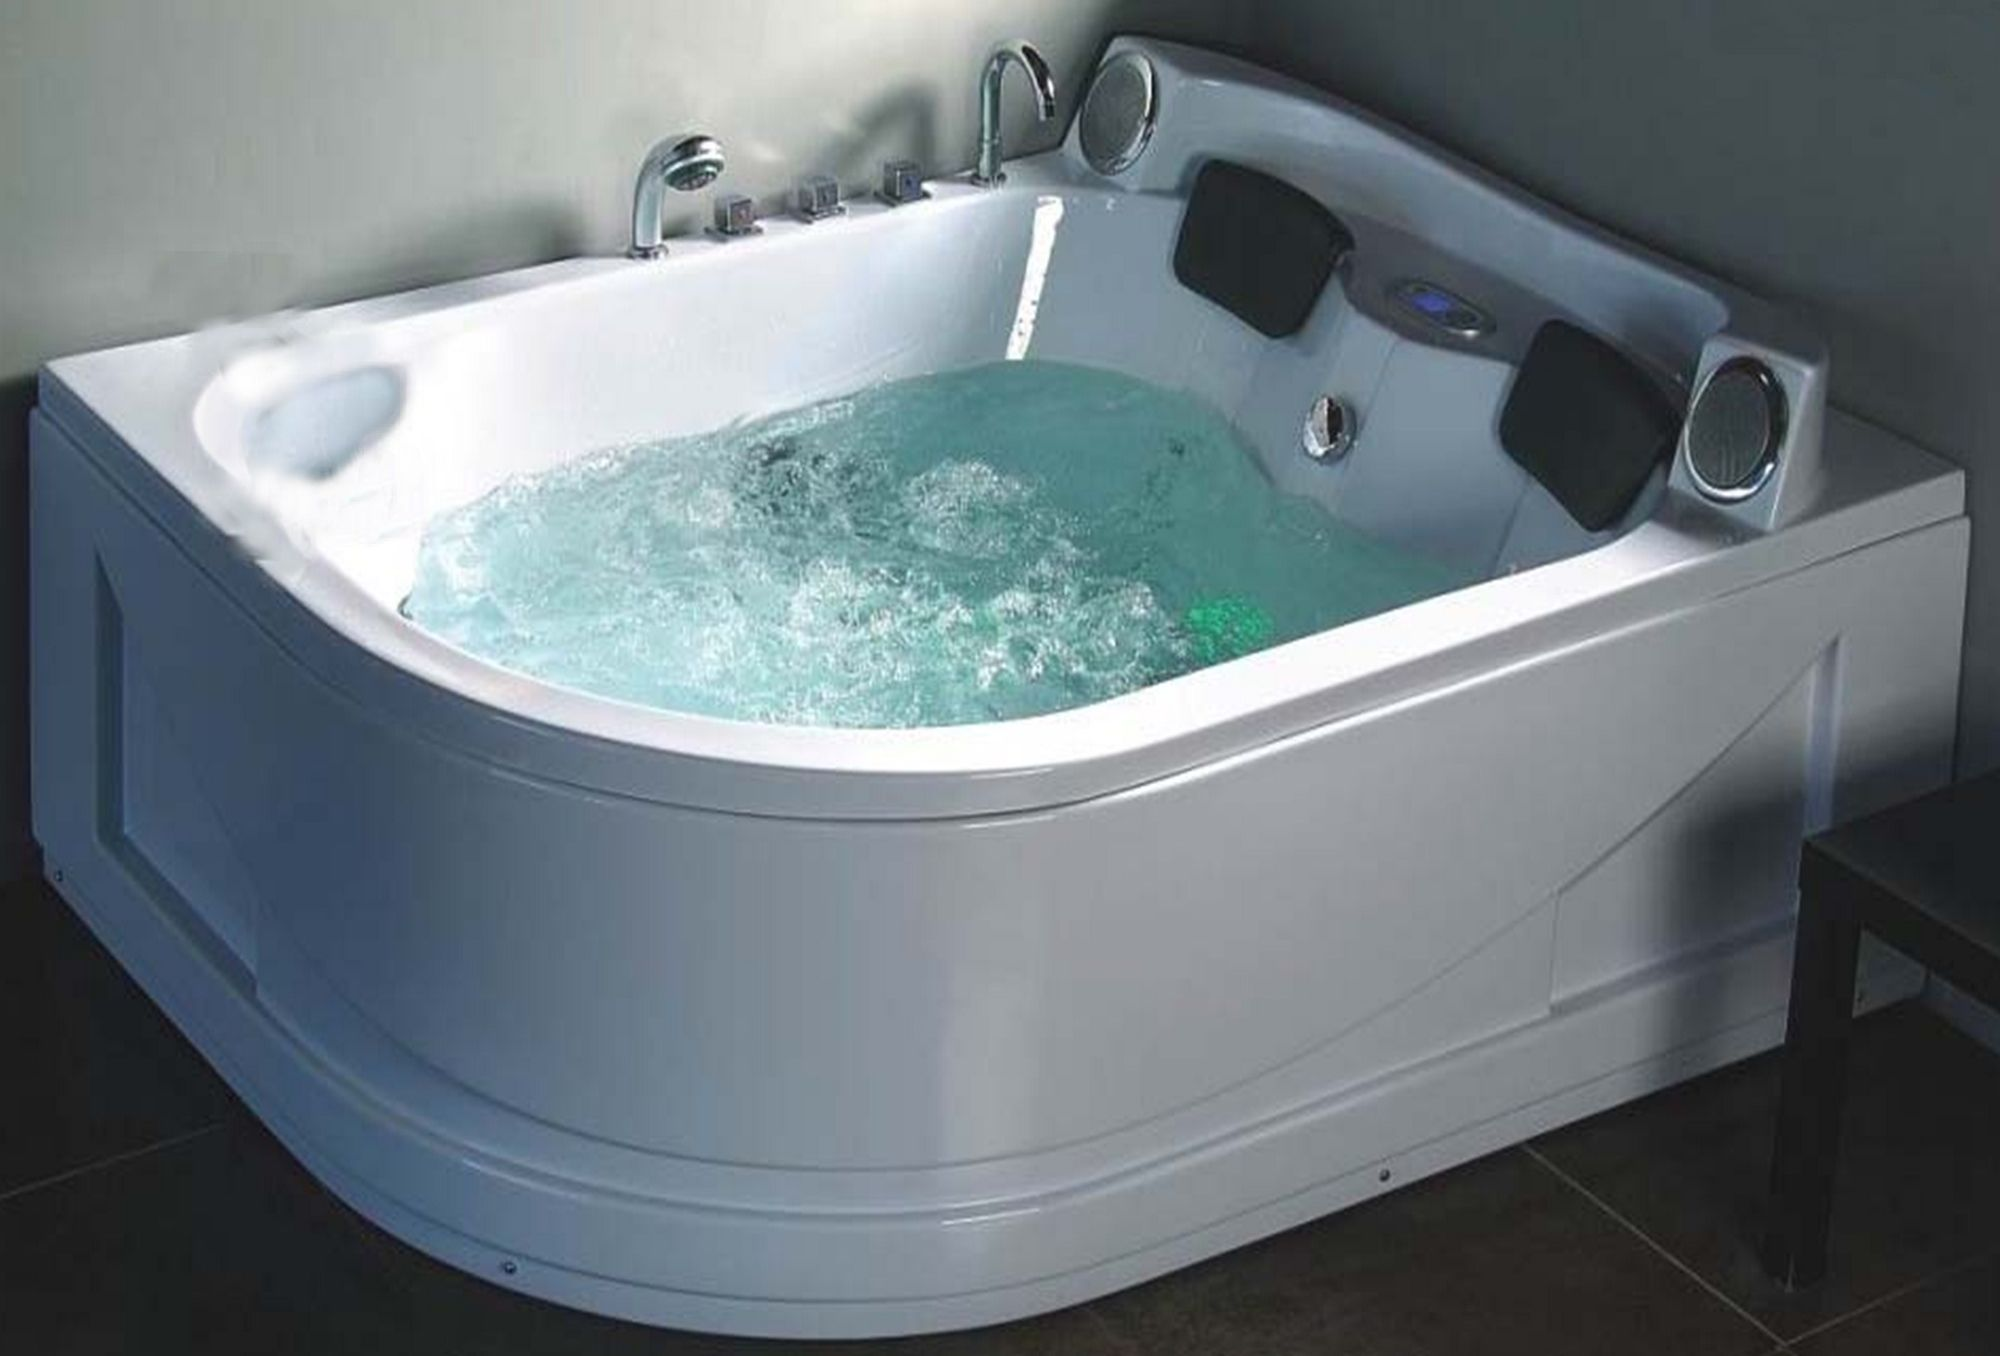 Spa Bathtub | BEDROOM FURNITURE | Pinterest | Bathtubs, Spa and ...